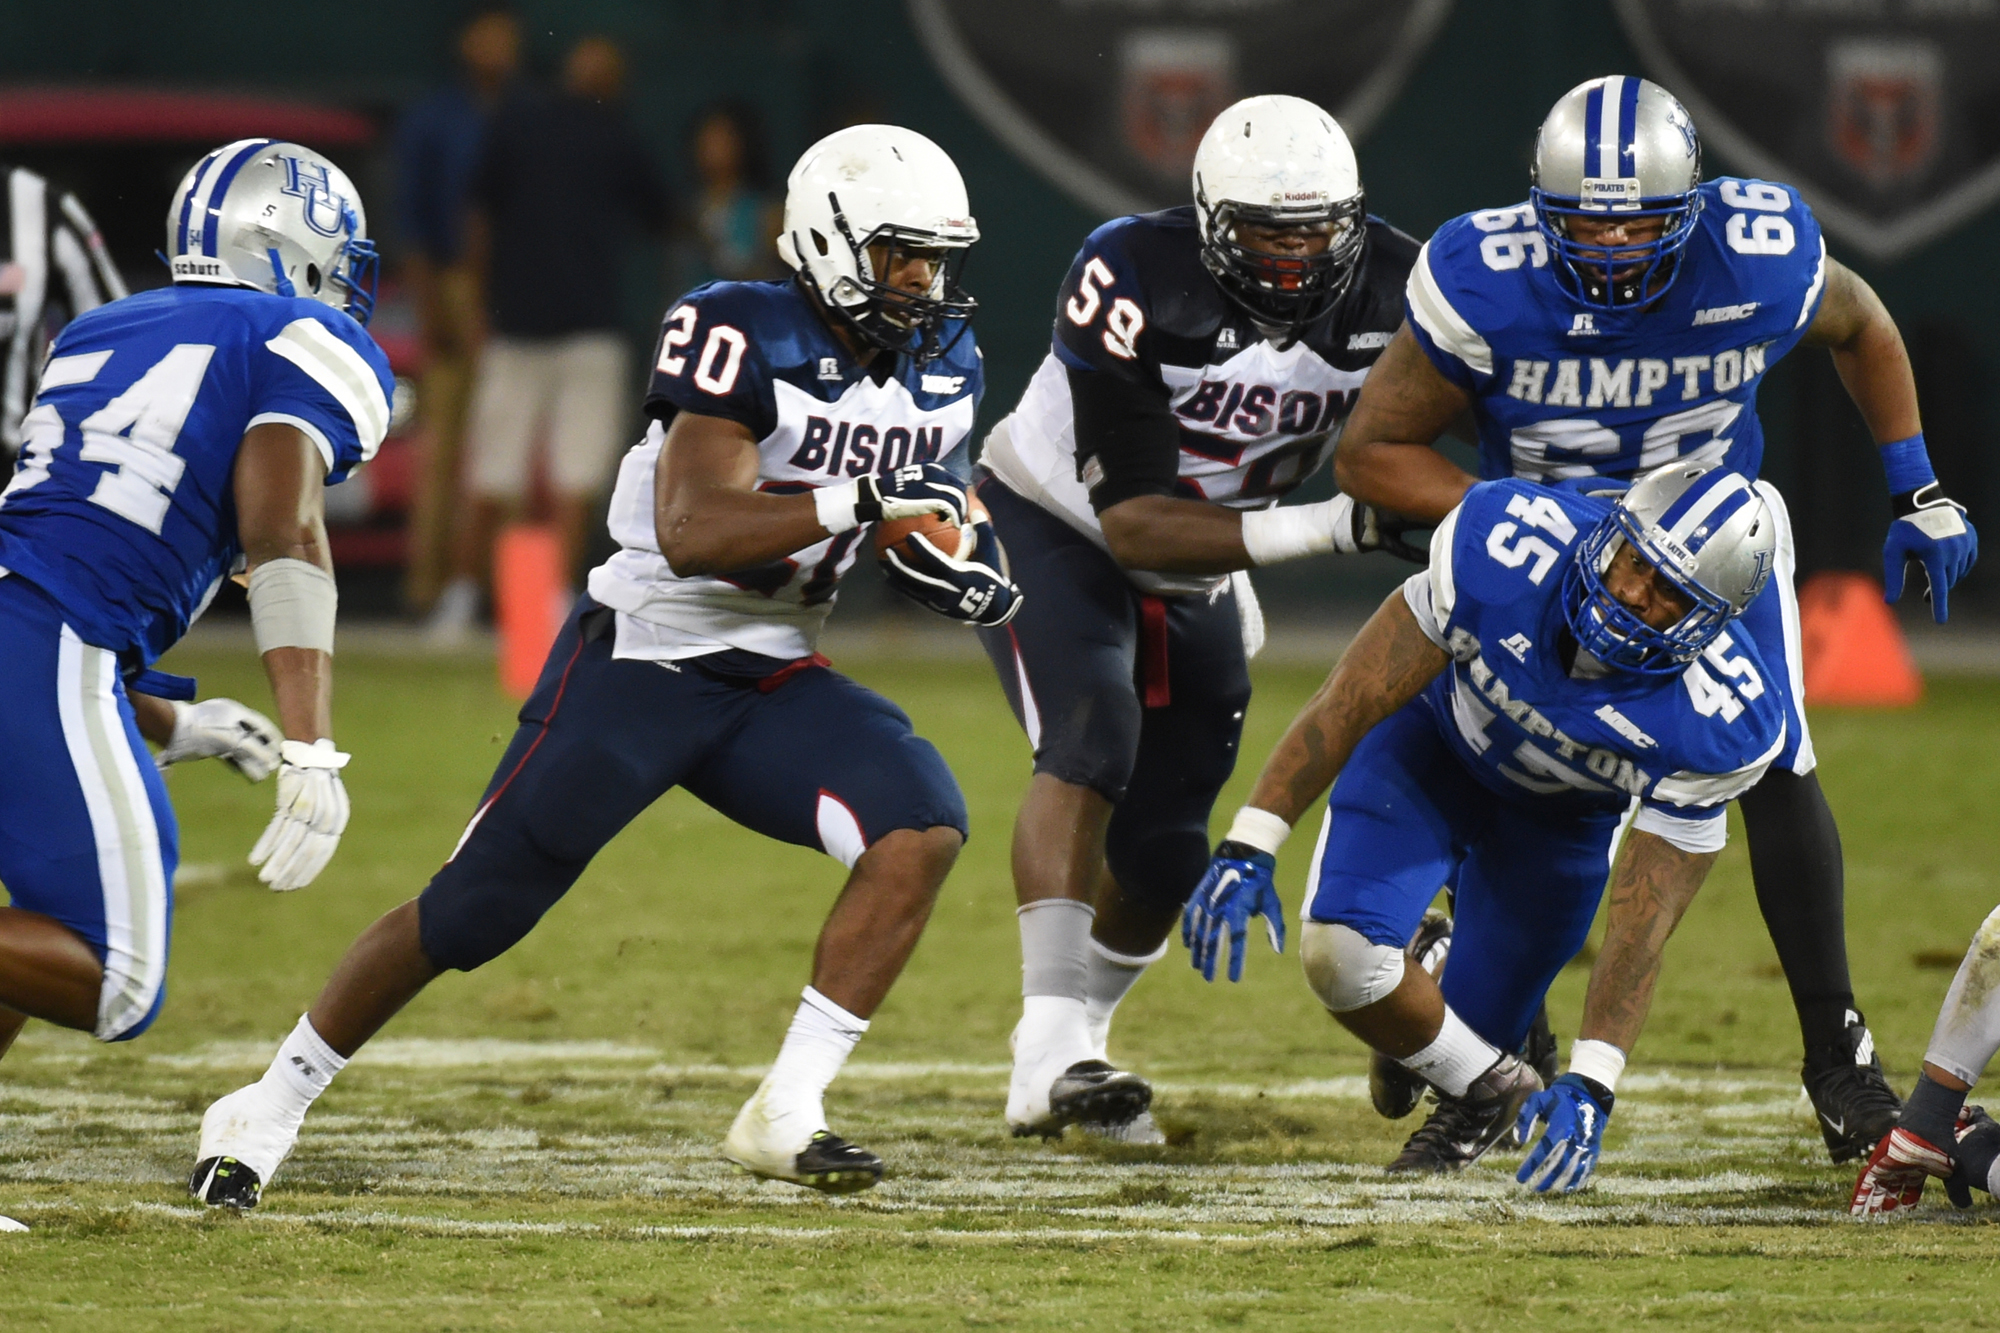 Howard Bison running back Aquanius Freeman (20) hits a big hole for a second quarter gain against Hampton on September 18, 2015 in Washington, DC.